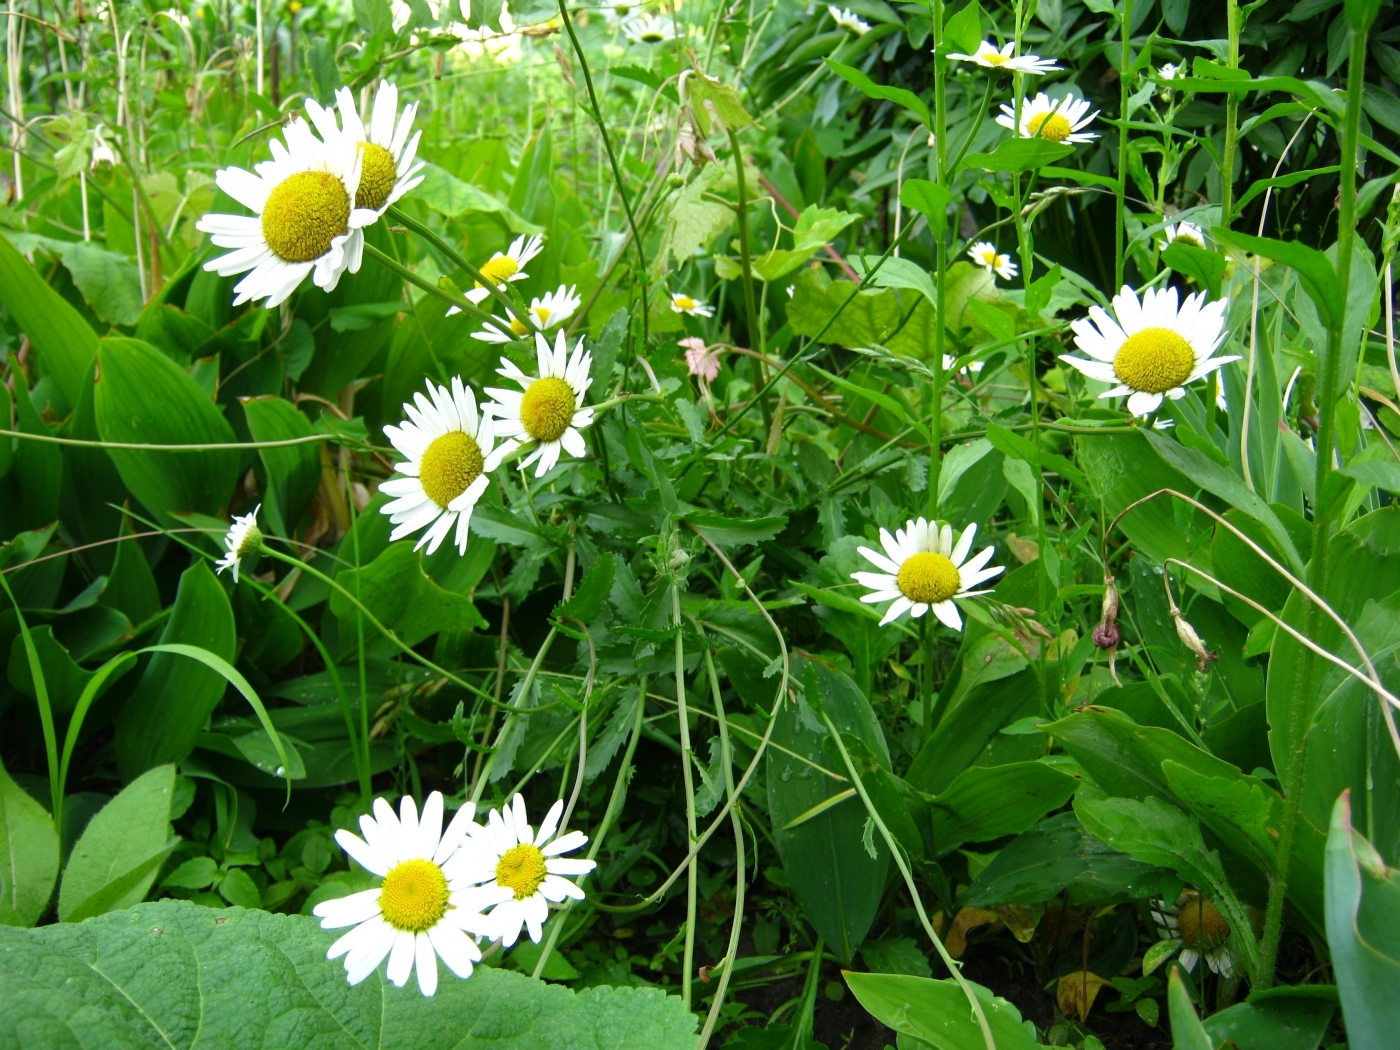 47224 download wallpaper Plants, Flowers, Camomile screensavers and pictures for free